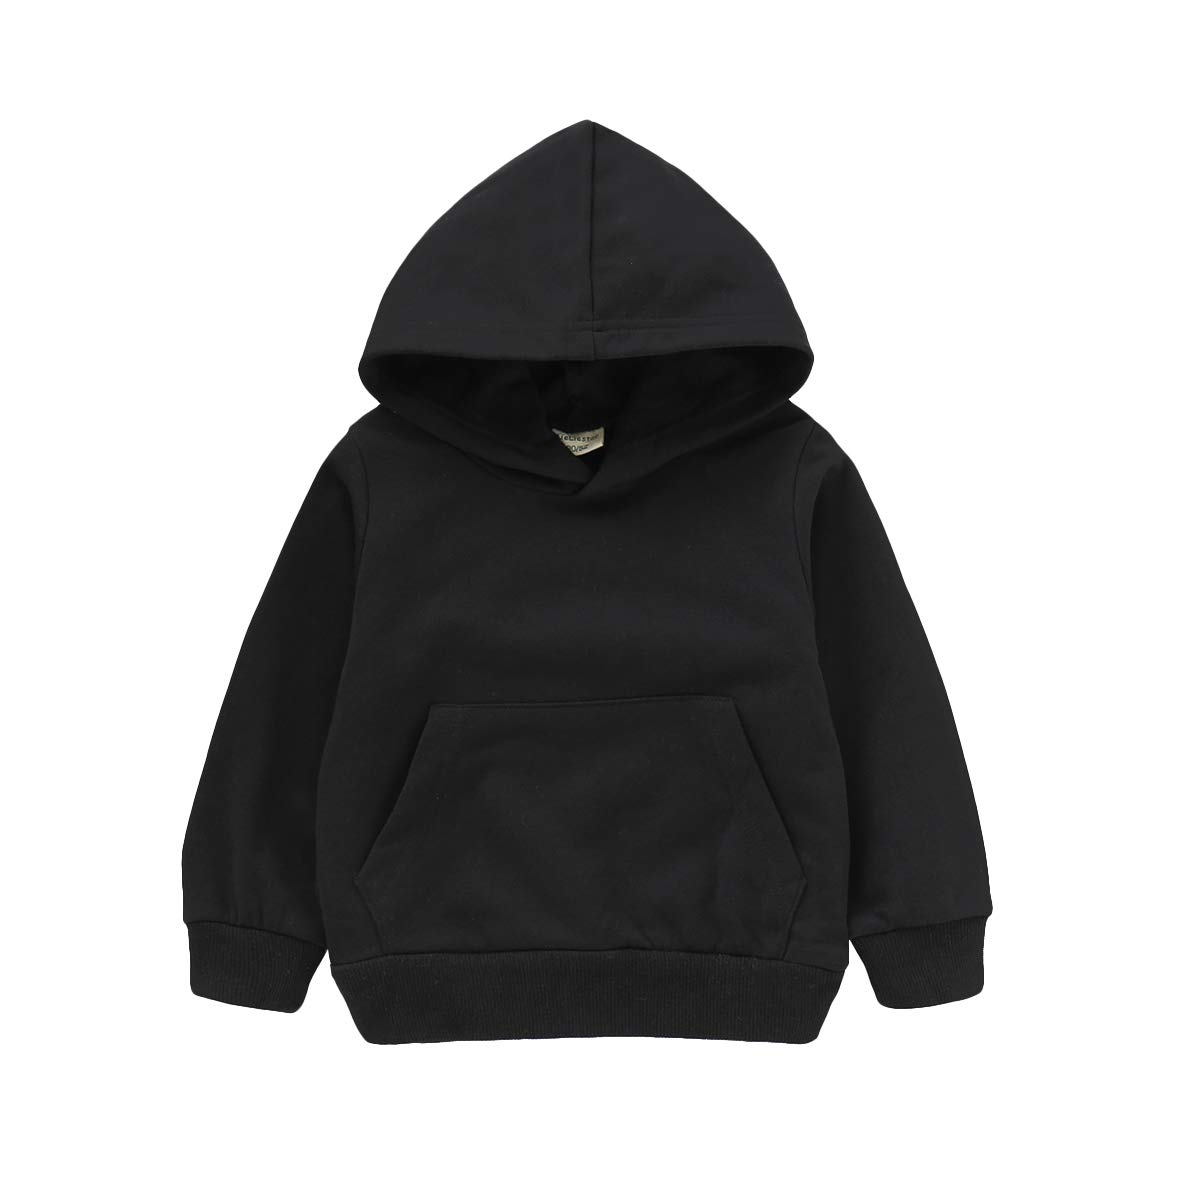 MODNTOGA Baby Sweatshirt 1-6 Years Old,Toddler Boy Girl Kids Autumn Winter Long Sleeve Solid Hooded Casual Tops Pullover (Black, 120(5T)) by MODNTOGA